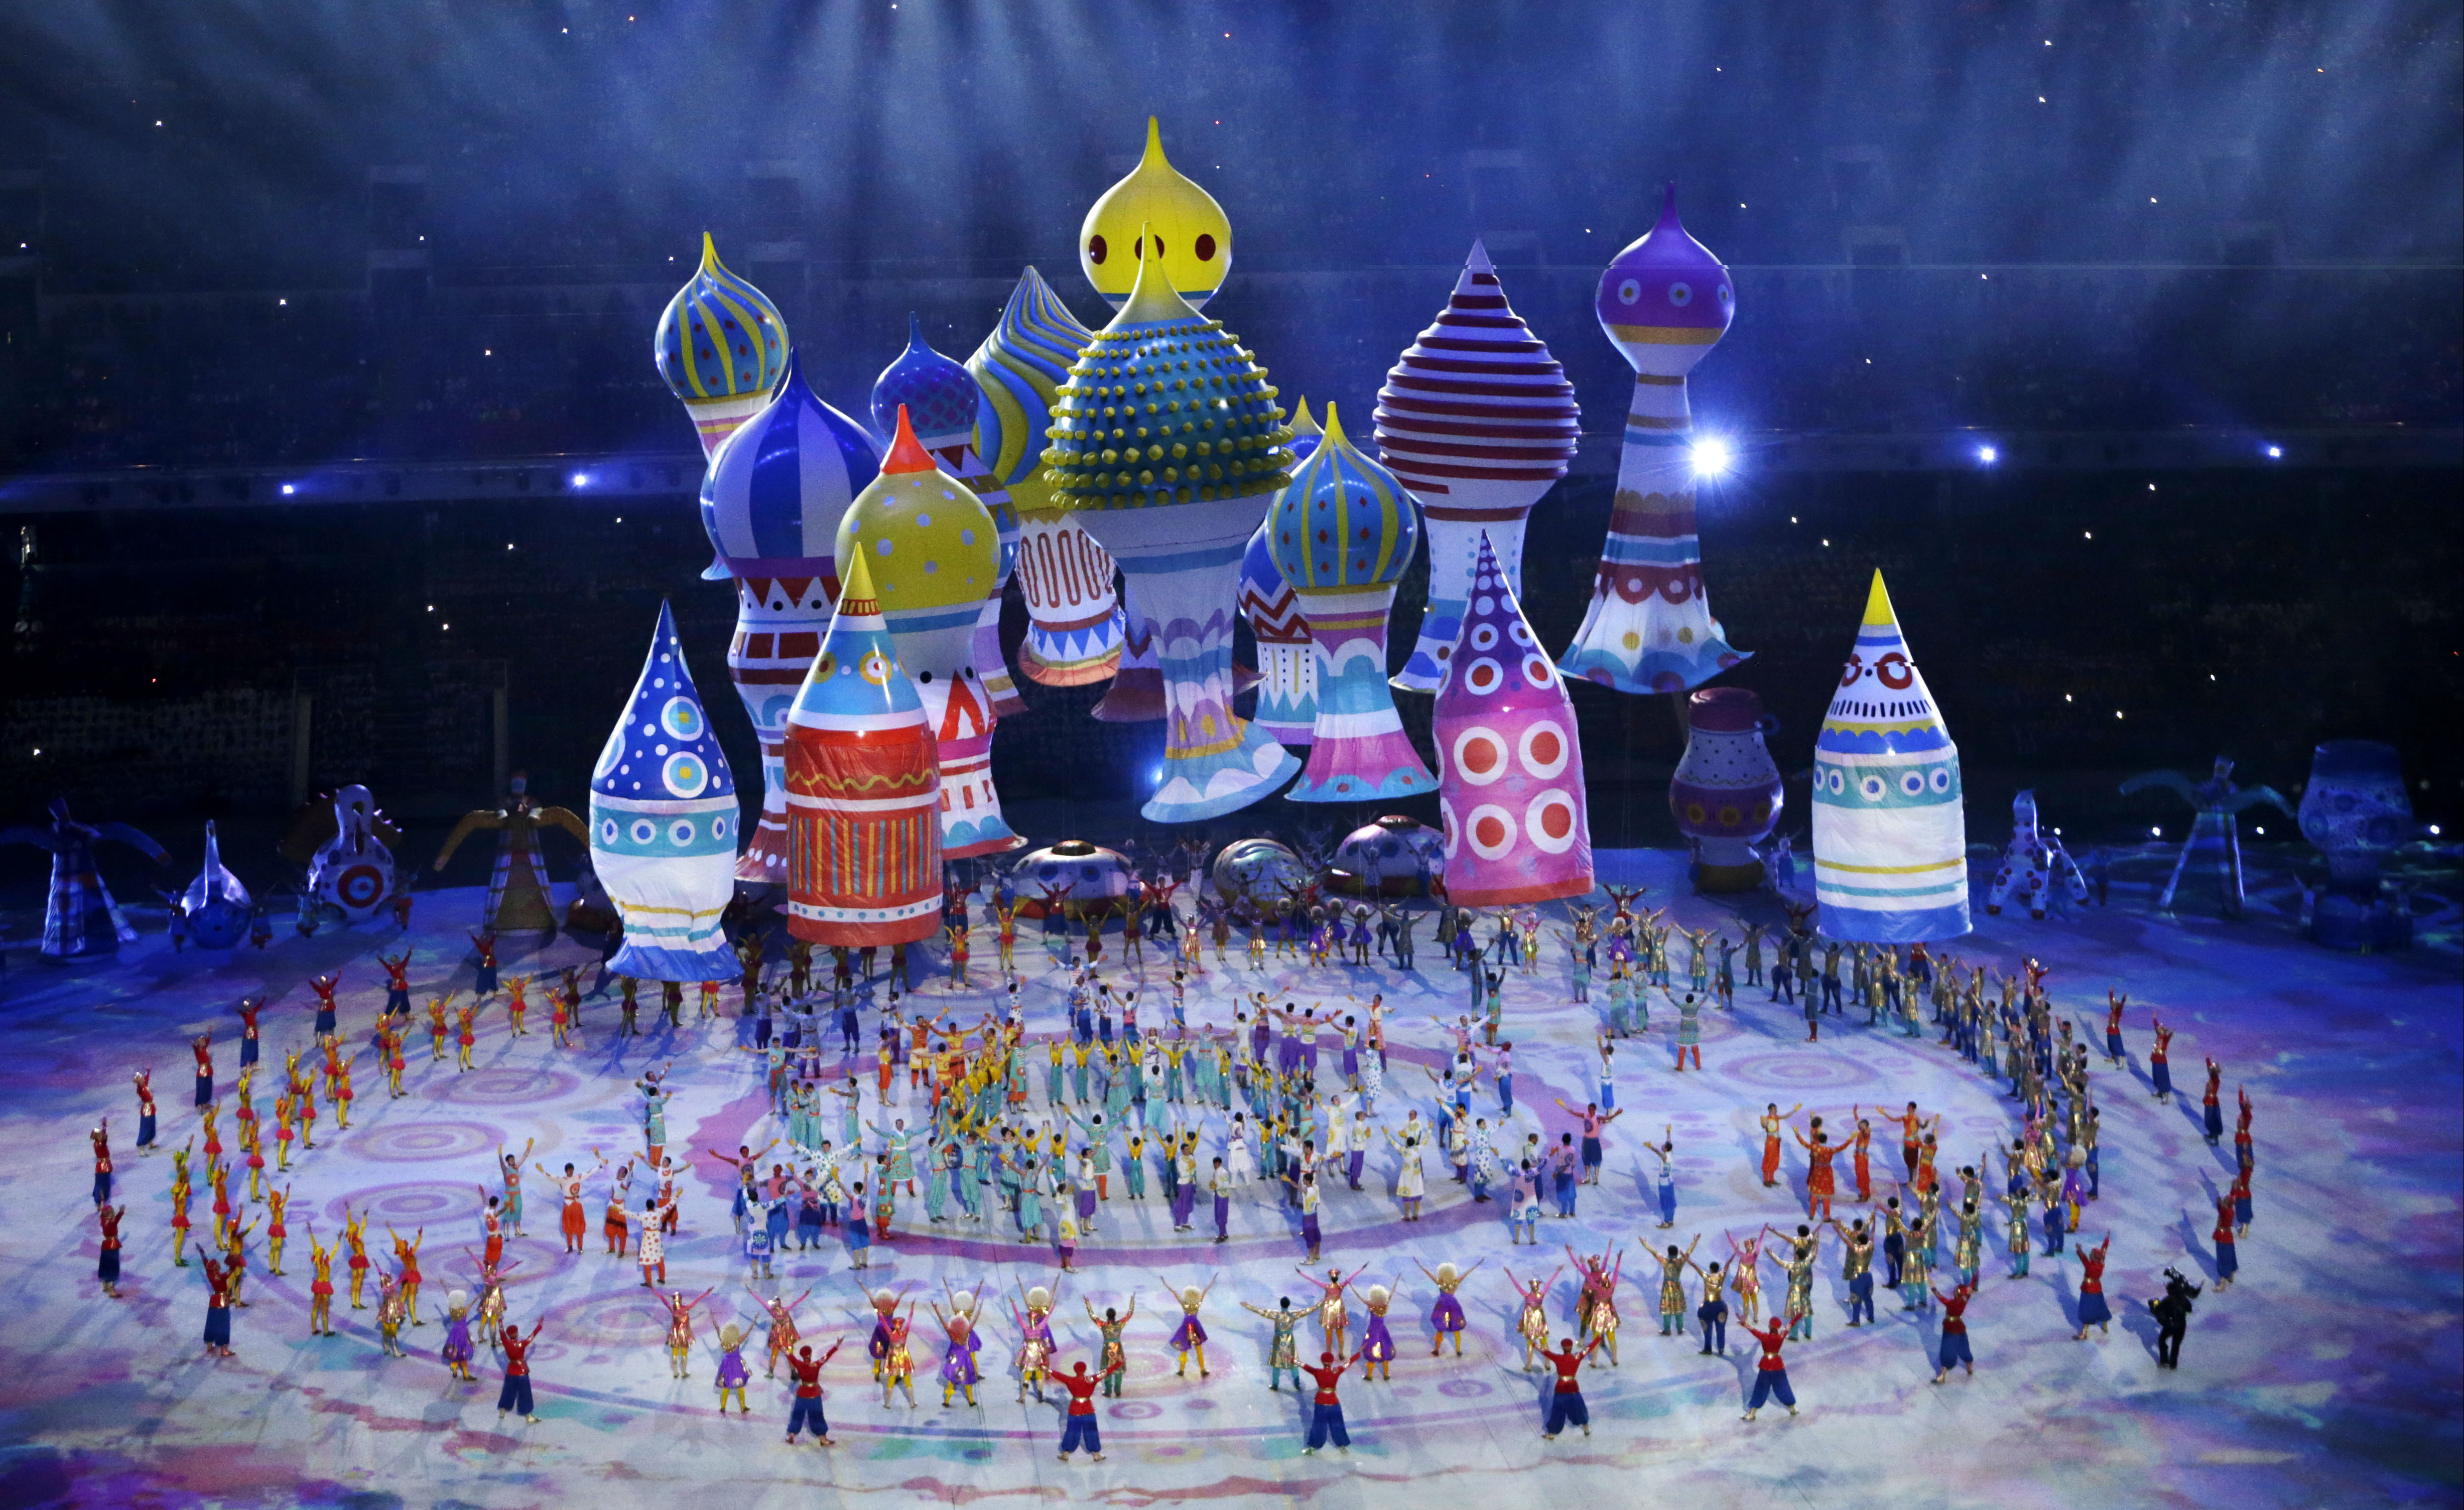 The are often olympics winter how